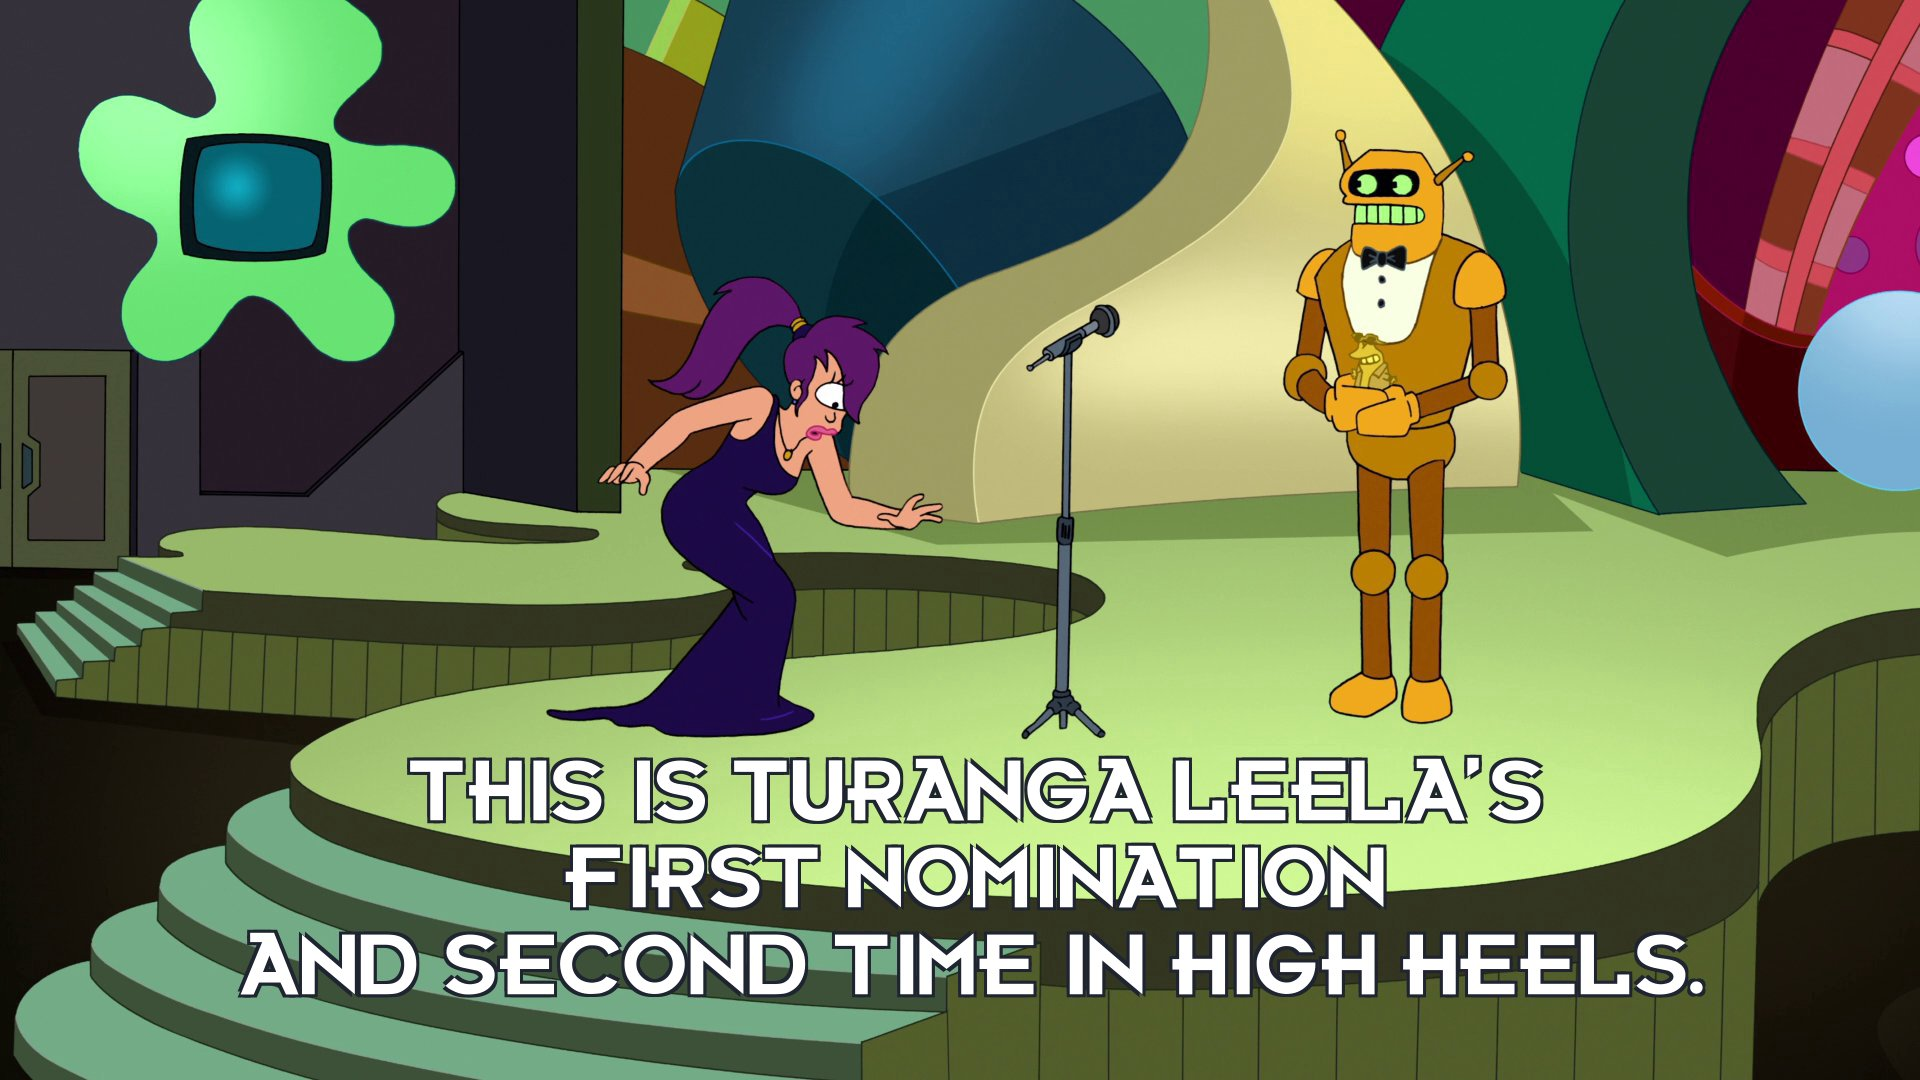 Announcer: This is Turanga Leela's first nomination and second time in high heels.